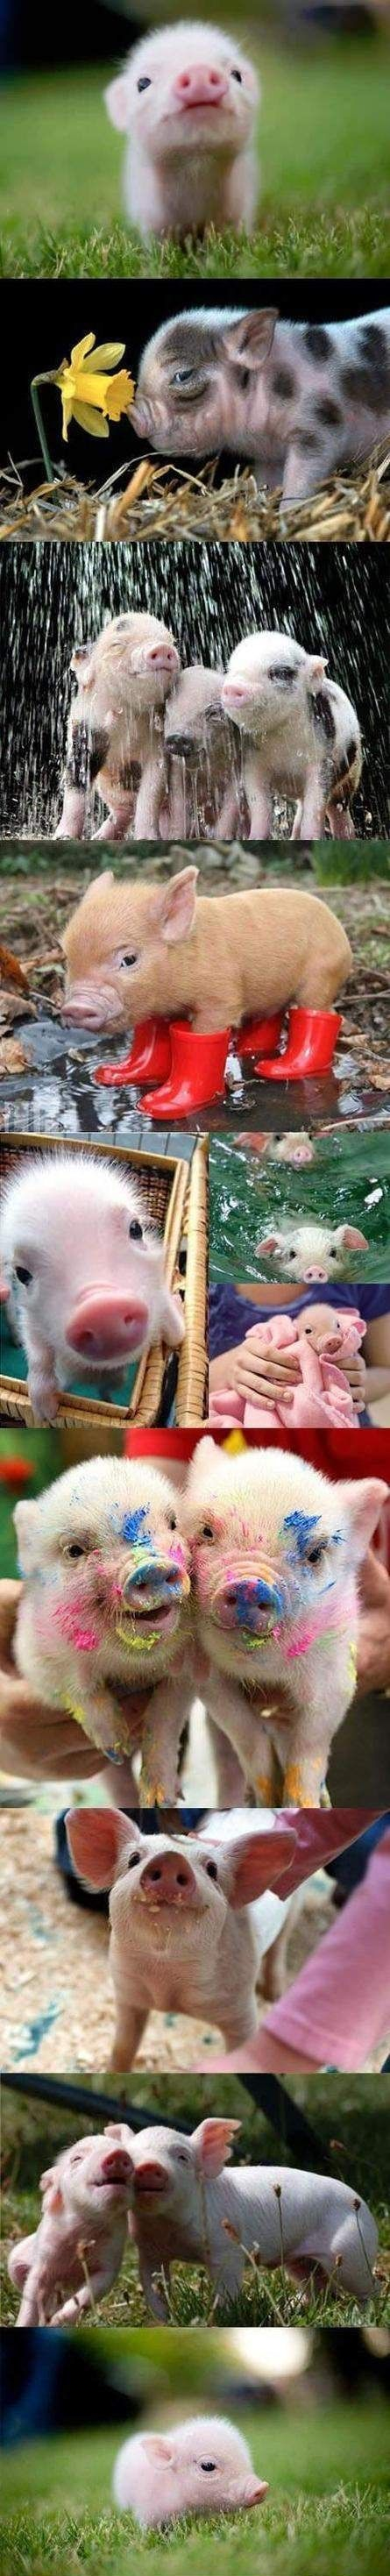 cute pigs shared by http://www.veggiefocus.com